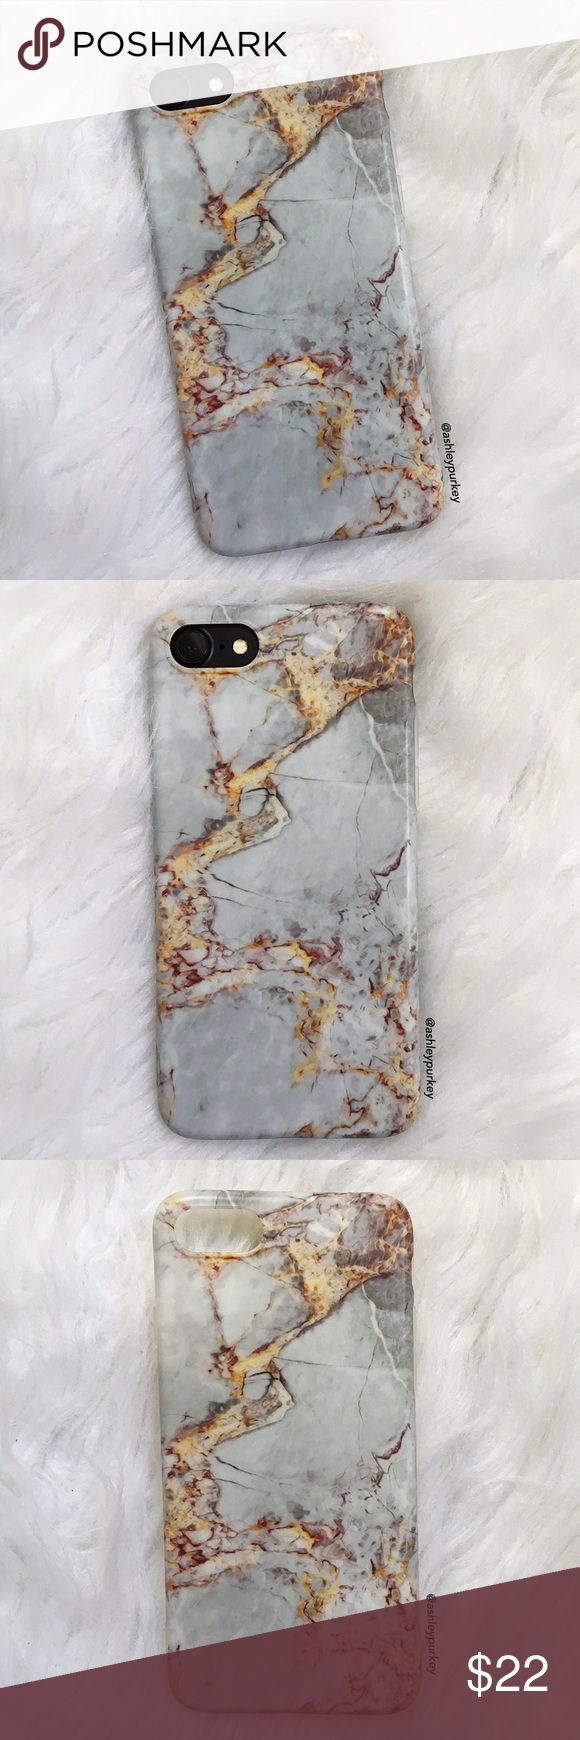 """gray gold cracked marble iPhone 6/6s 7 phone case sizes: iPhone 6/6s (4.7"""") iPhone 7 (4.7"""")  •flexible silicone   •phone not included   •no trades    *please make sure you purchase the correct size case. i am not responsible if you purchase the wrong size  item #: 101 B-Long Boutique  Accessories Phone Cases"""